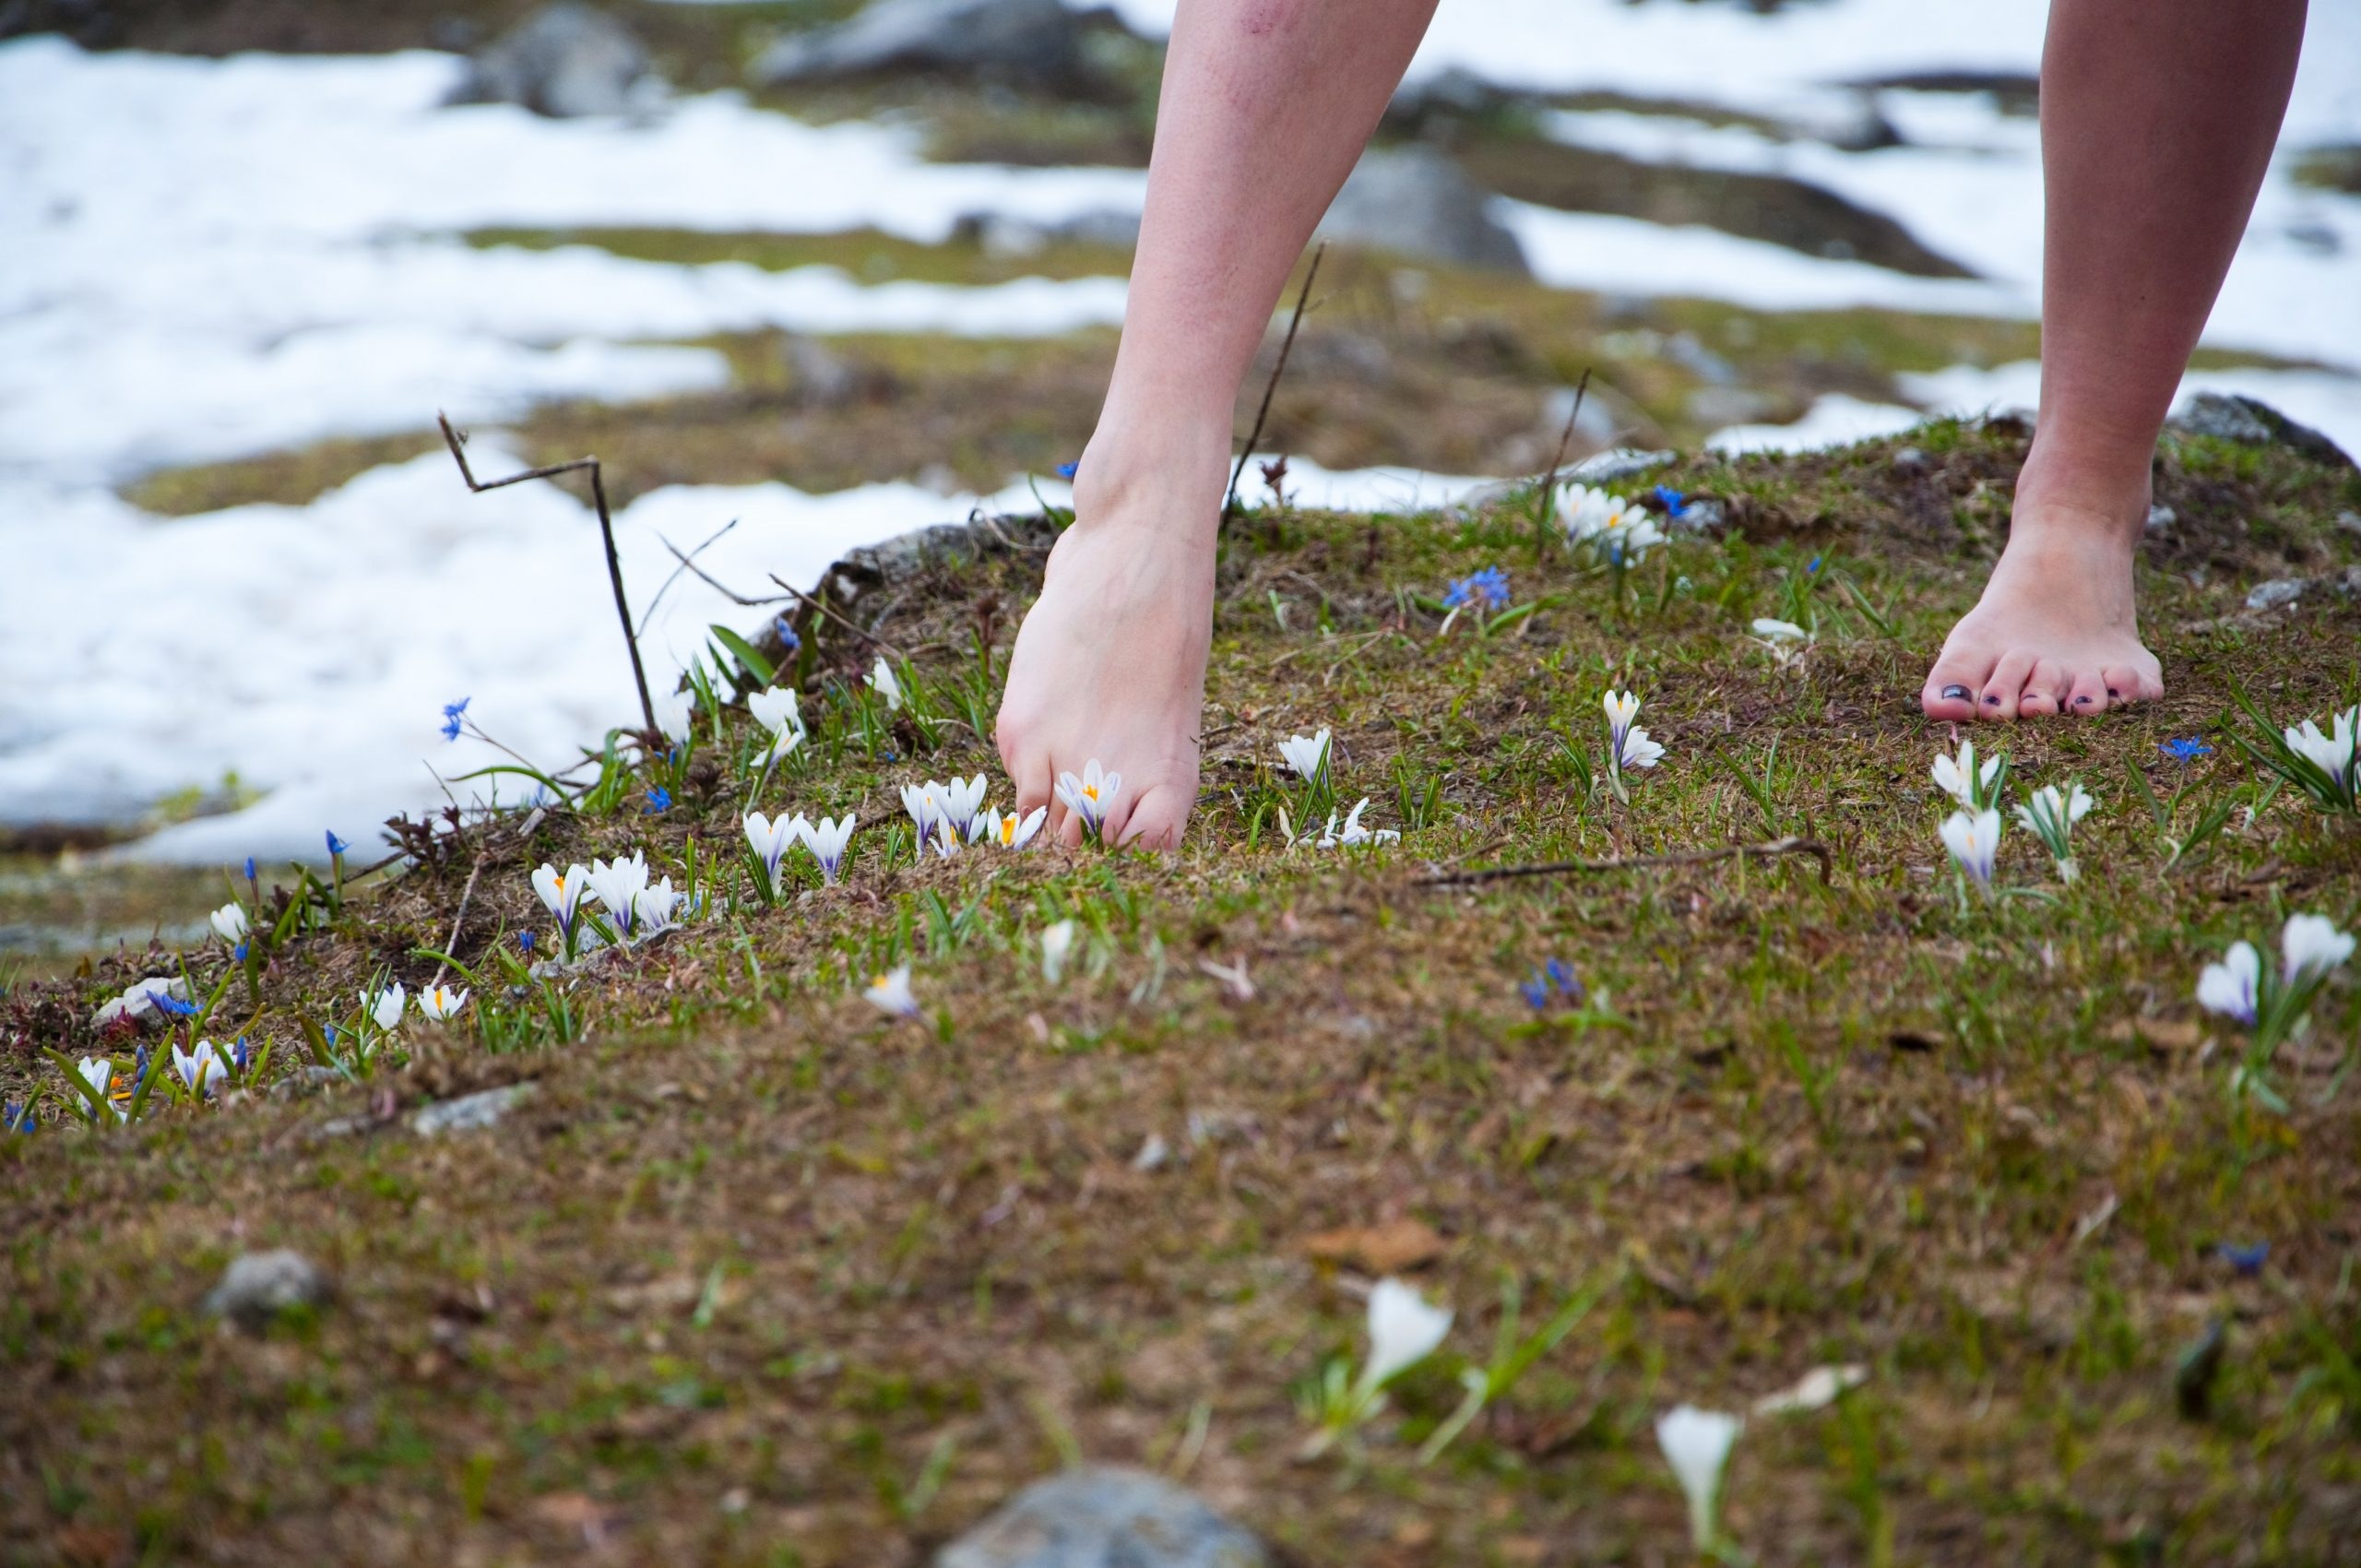 earthing to ground yourself